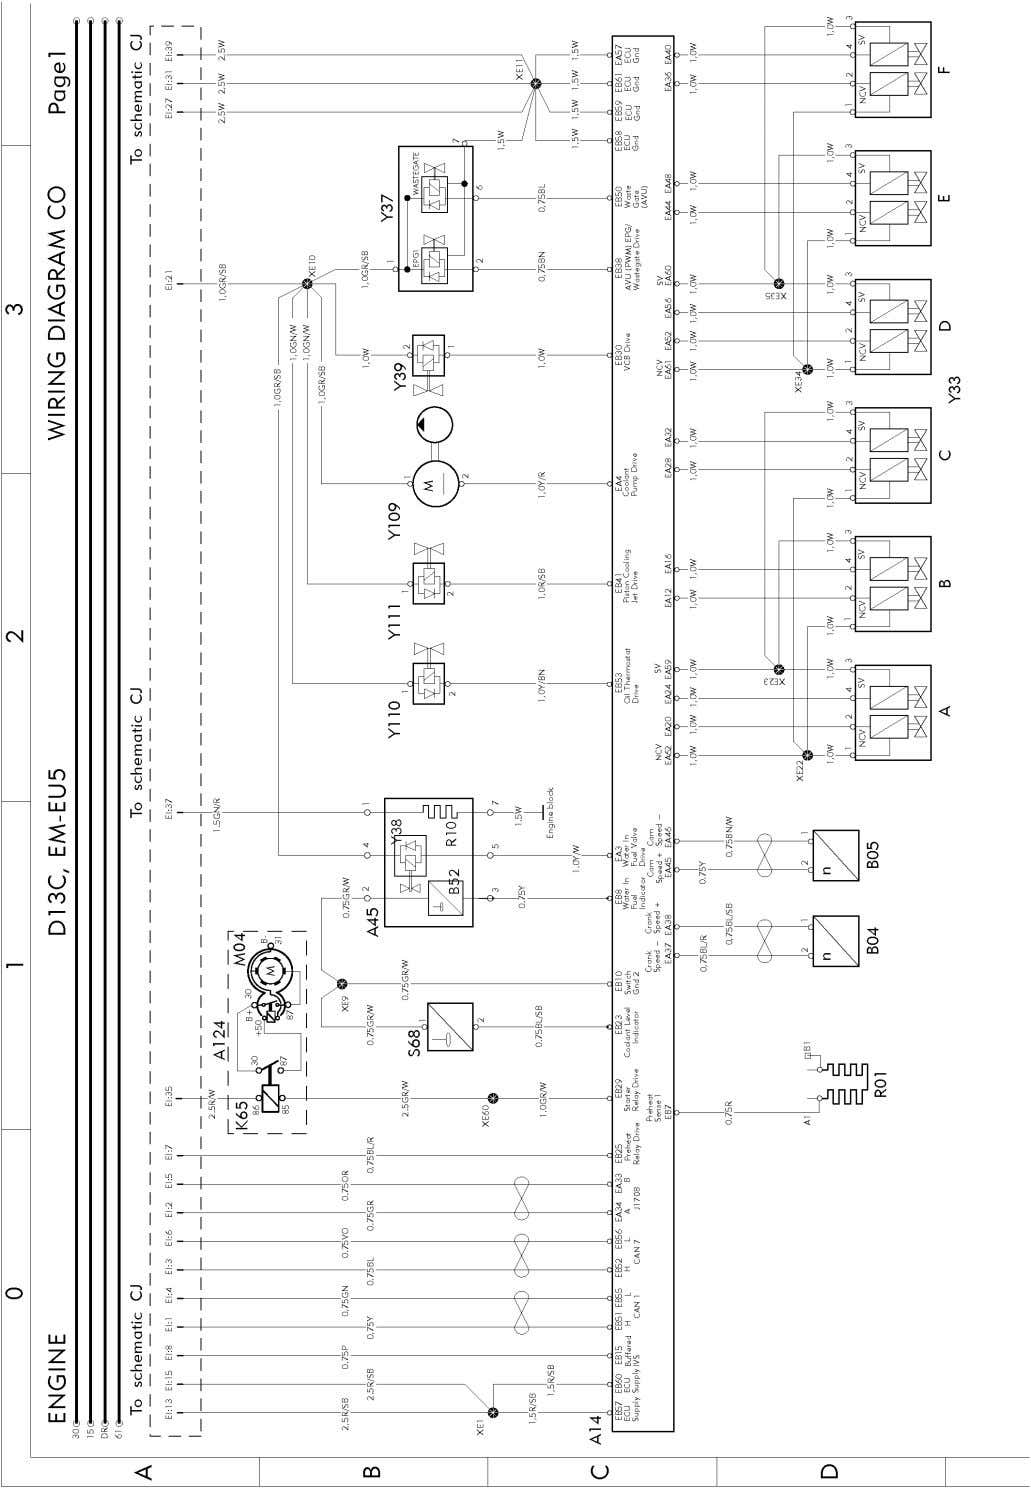 T3029207 Wiring diagram Page 29 (298)